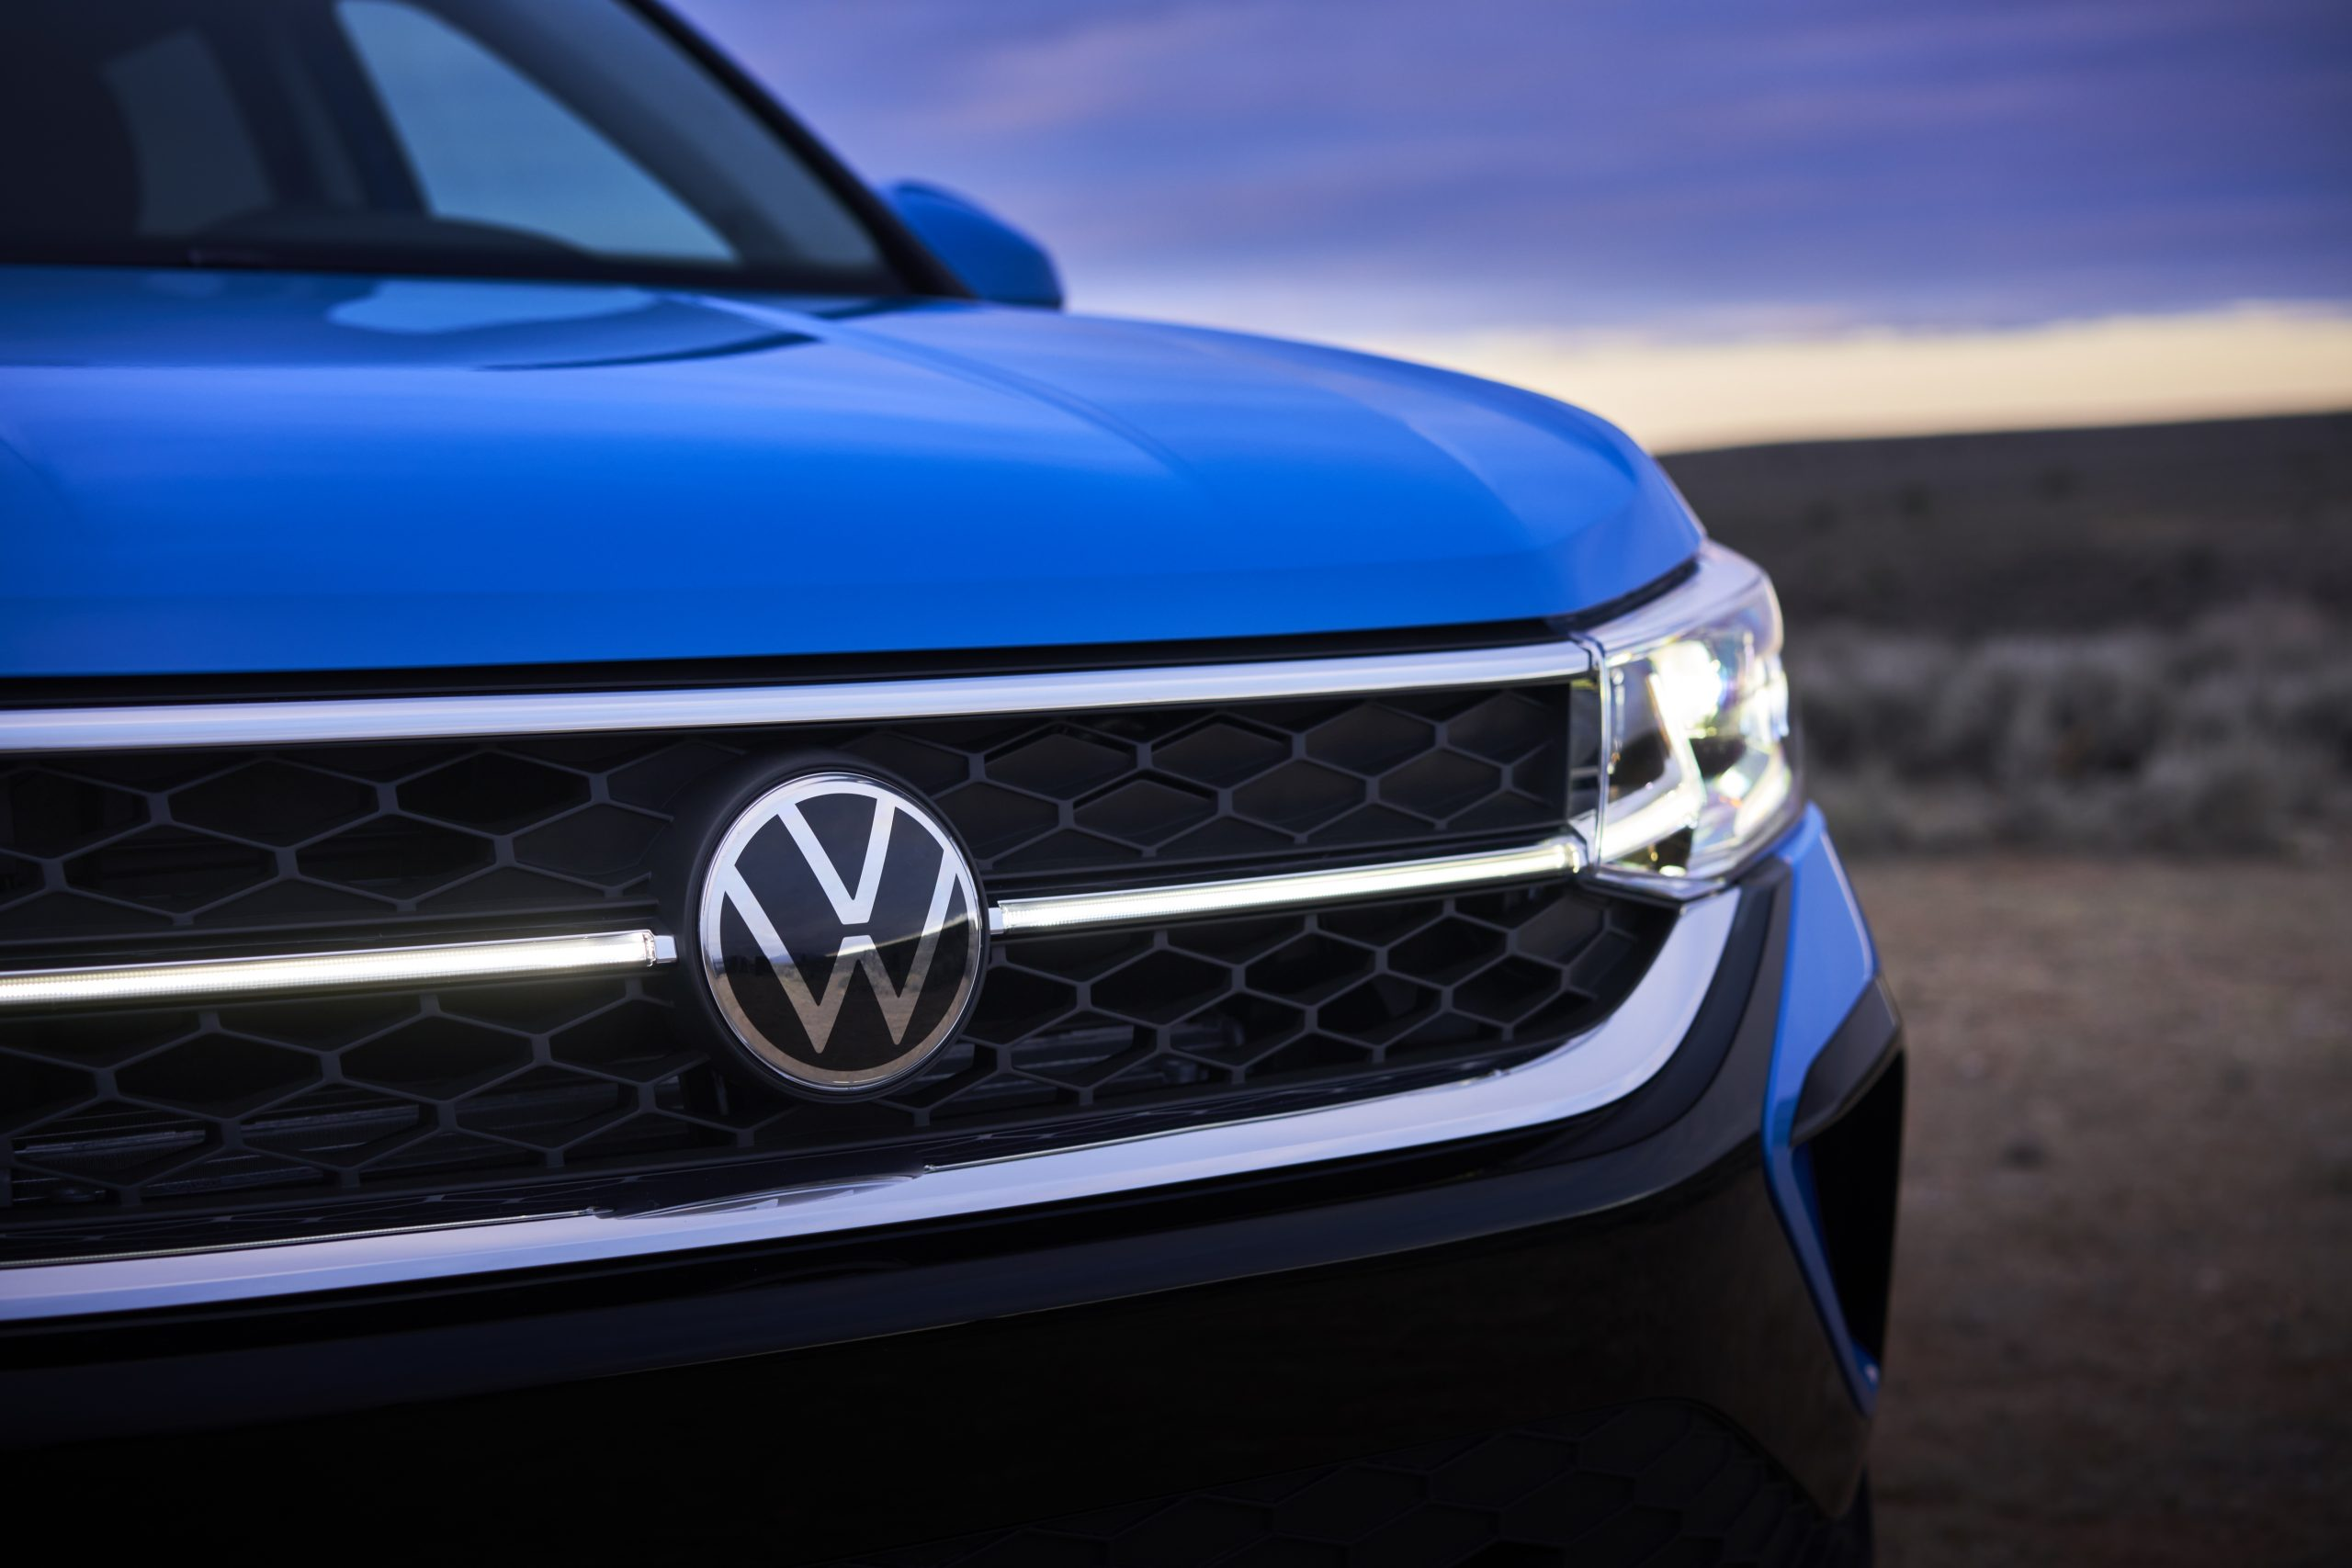 2022 Volkswagen Taos front logo and head lamp